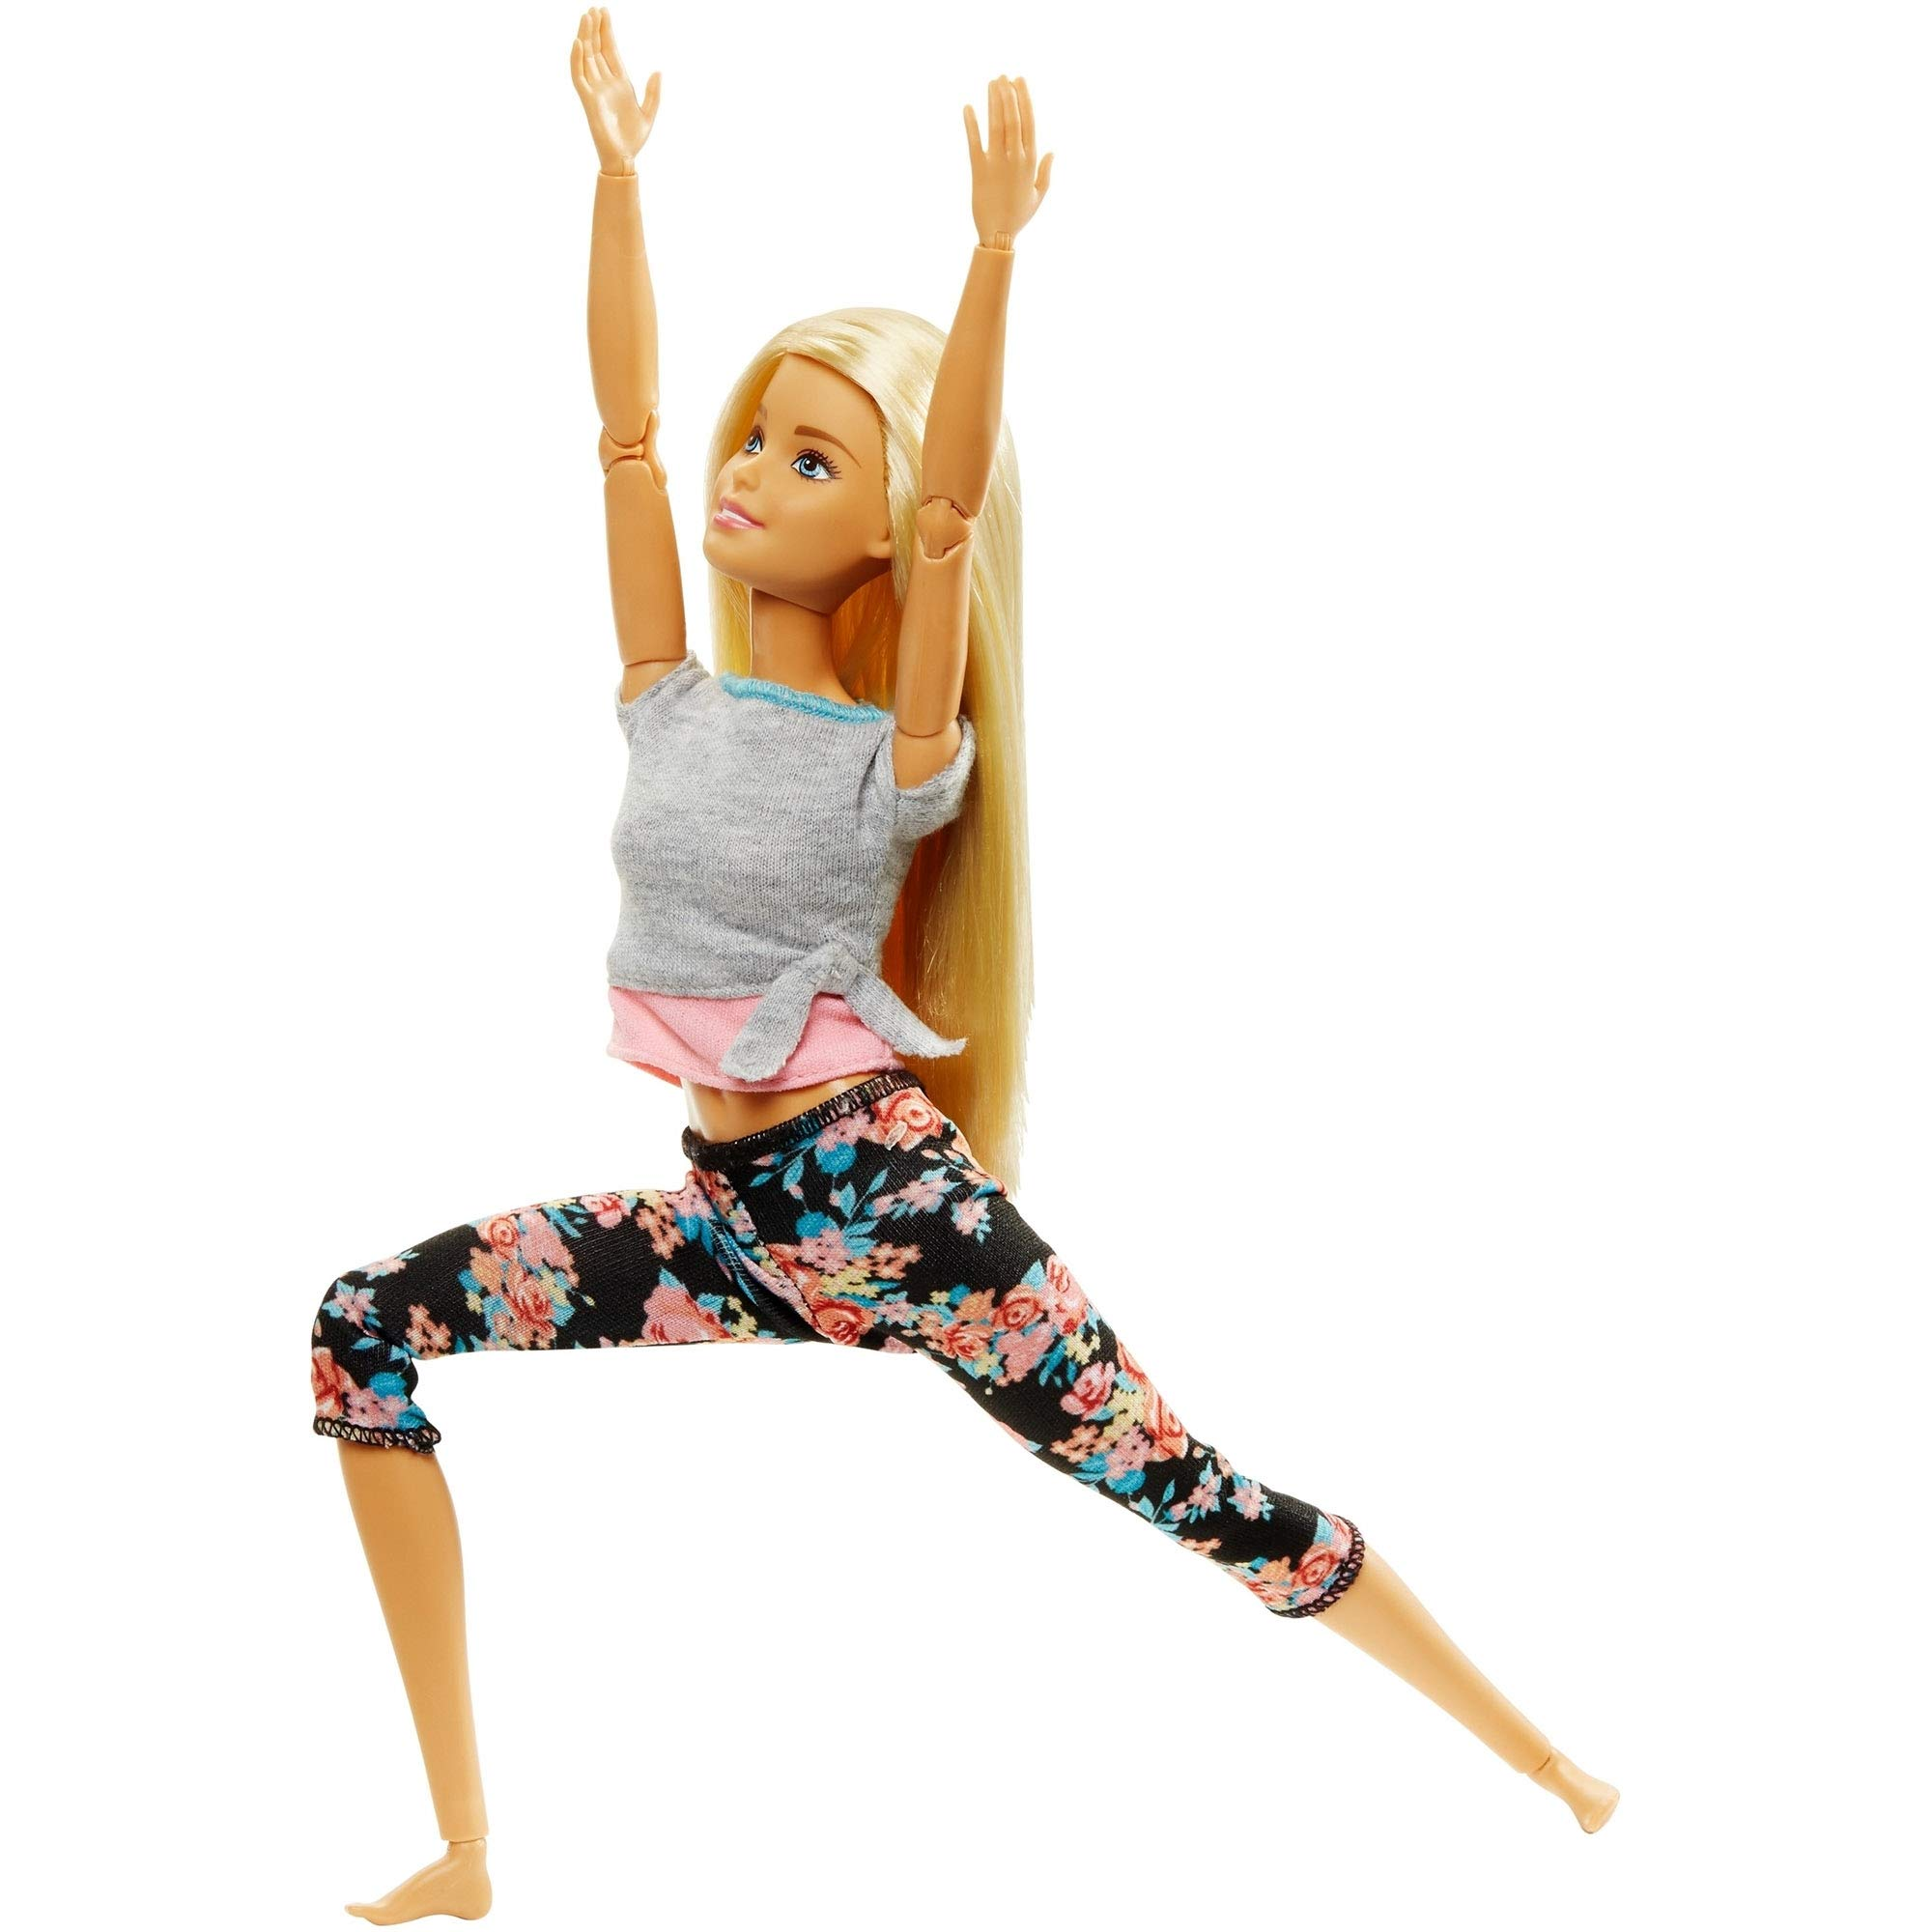 Barbie Made to Move Dolls with 22 Joints and Yoga Clothes, Floral, Grey